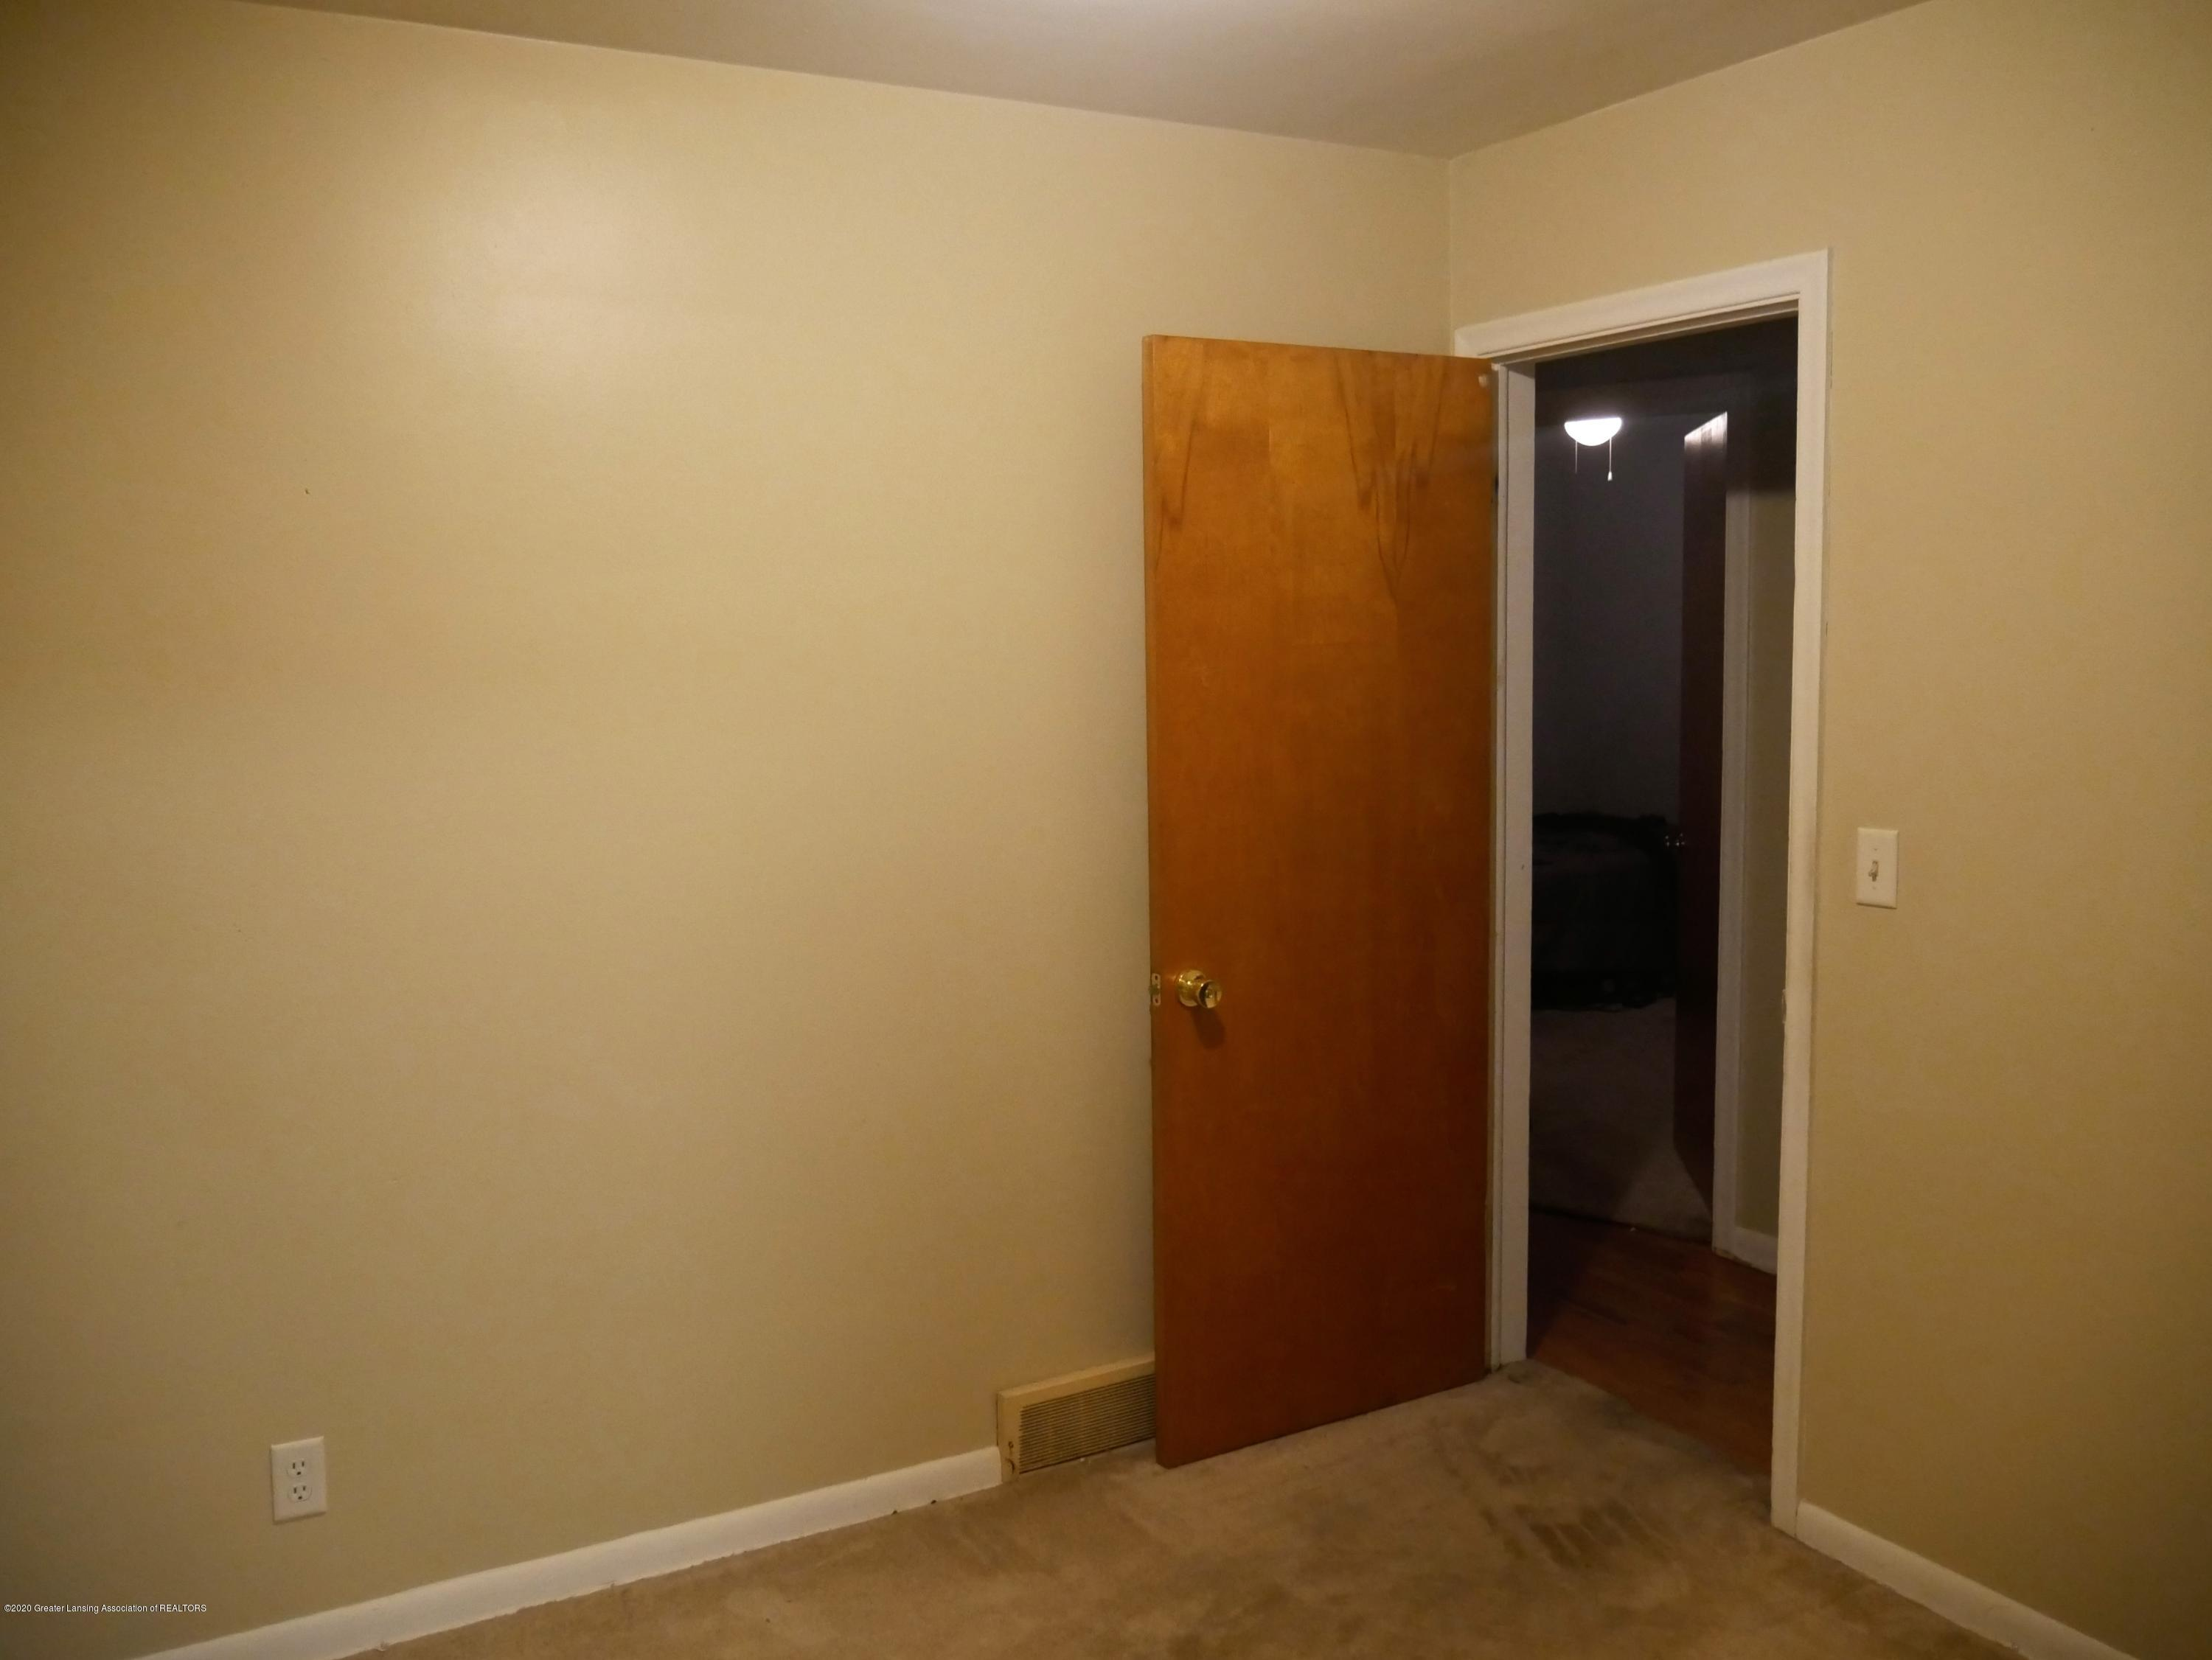 4921 Devonshire Ave - Other Room - 9